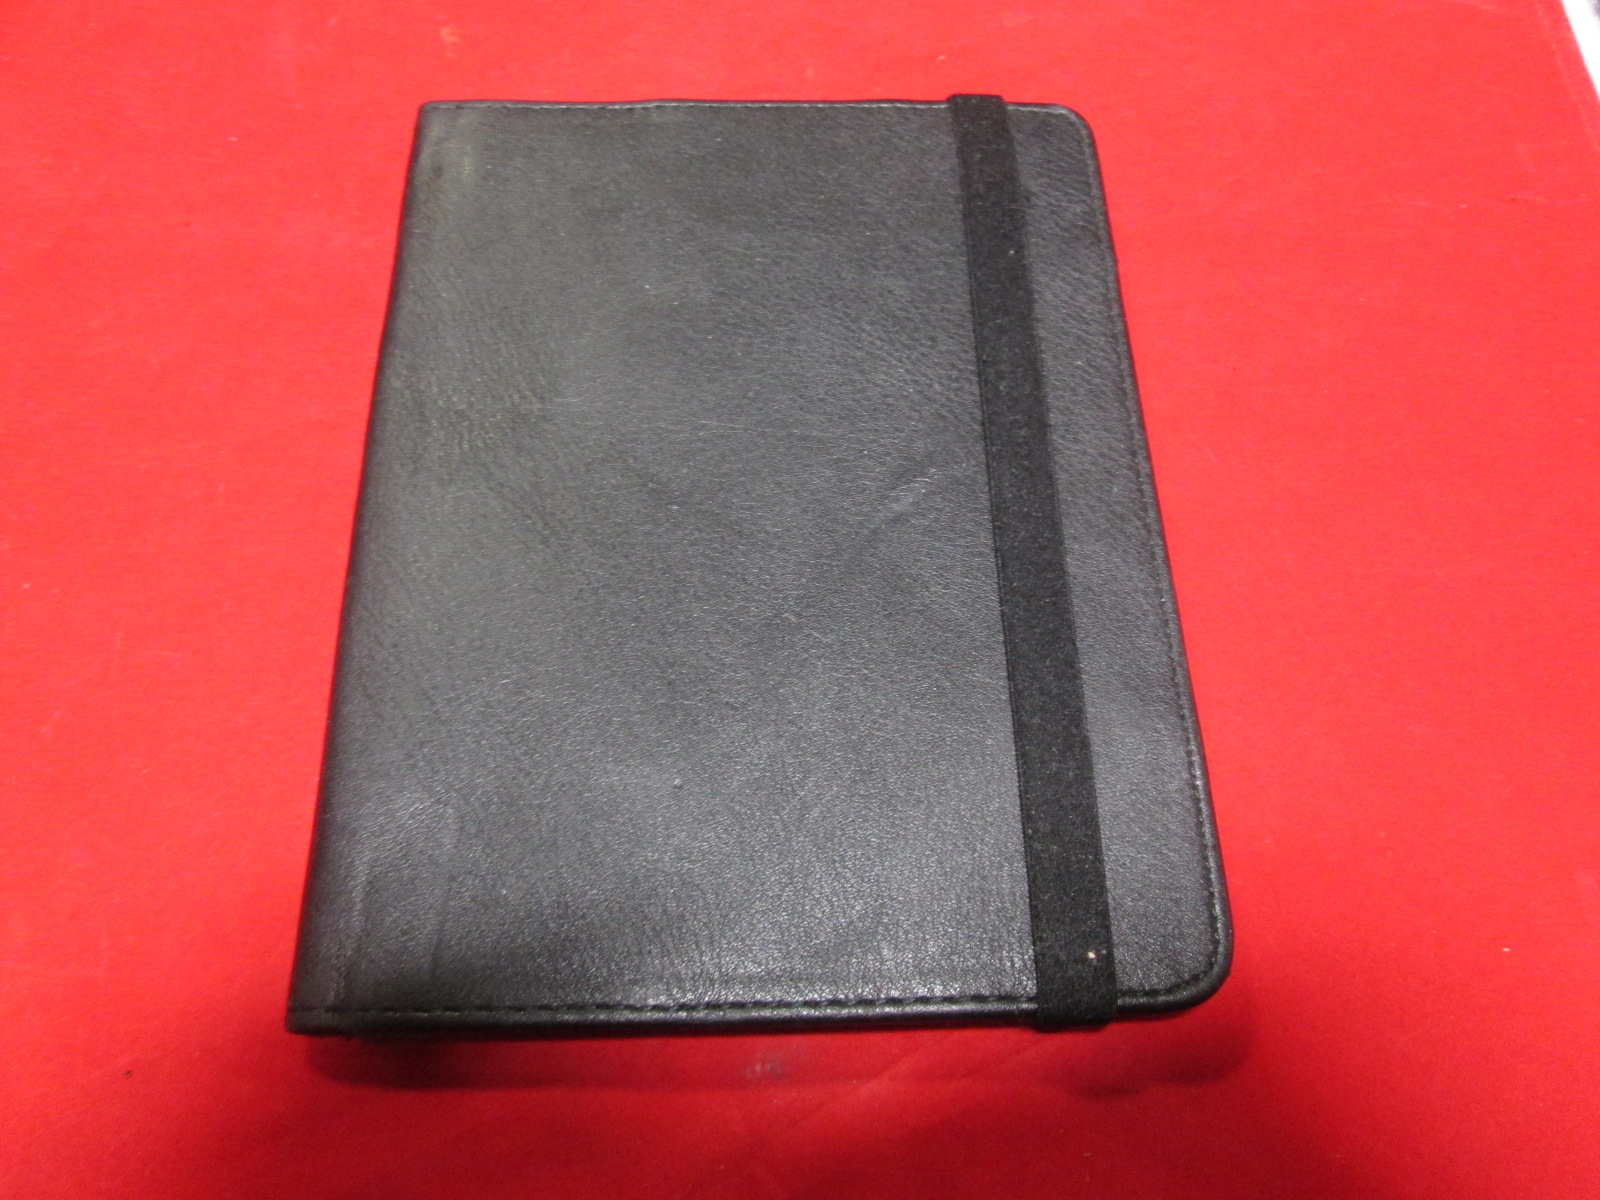 Marware Universal Black Leather 7 Inch Tablet Case